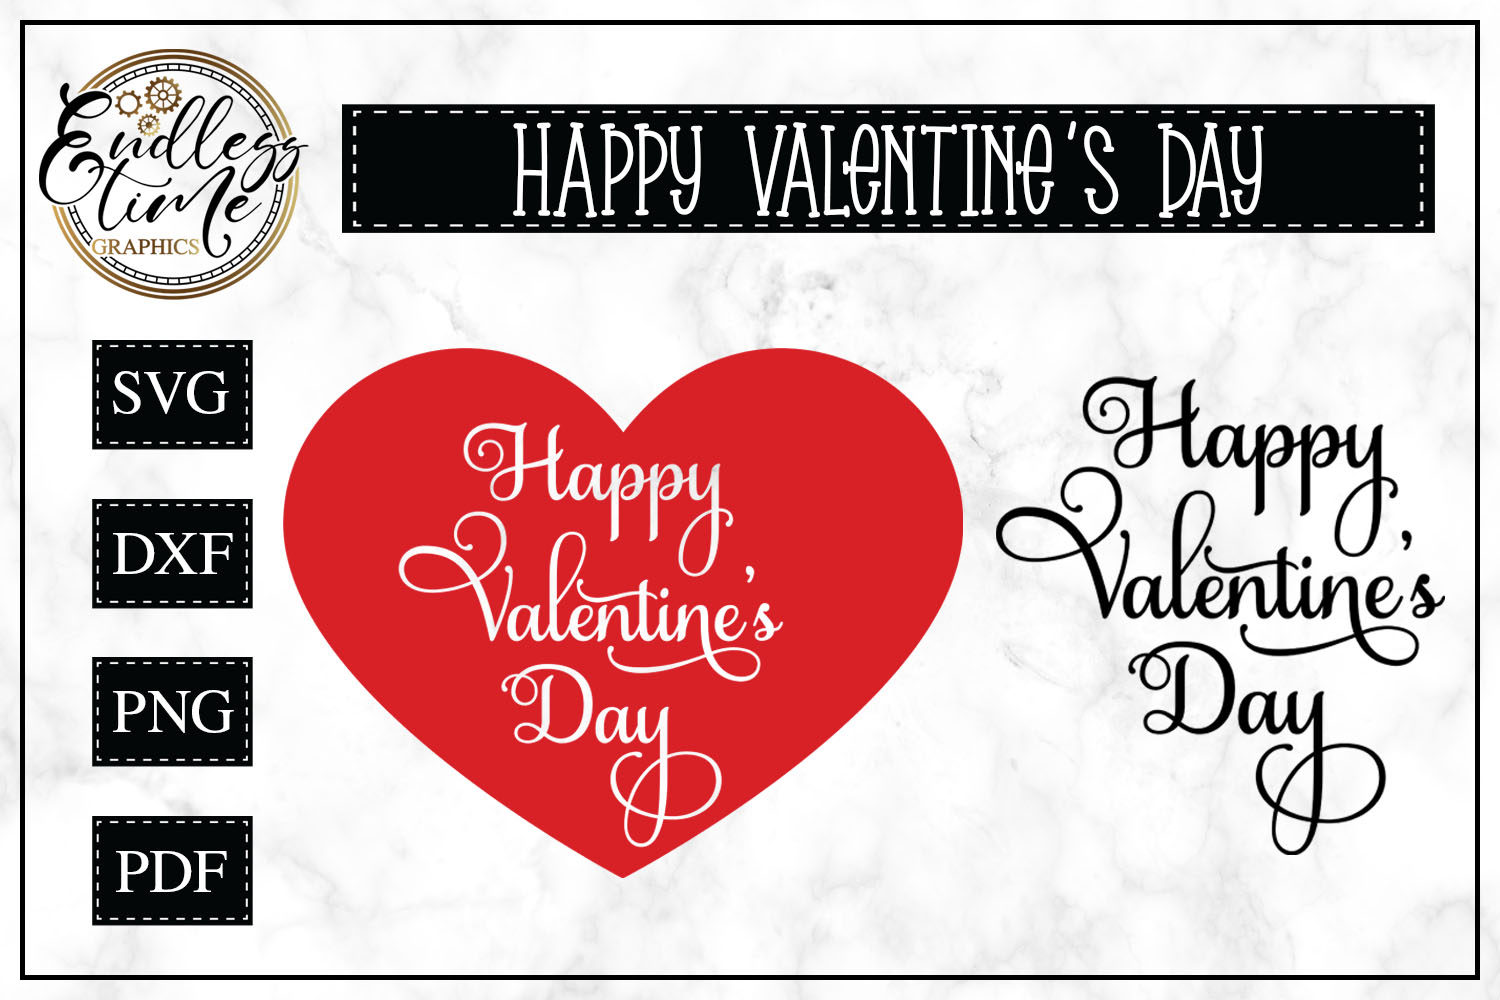 Happy Valentine's Day SVG Cut File example image 1